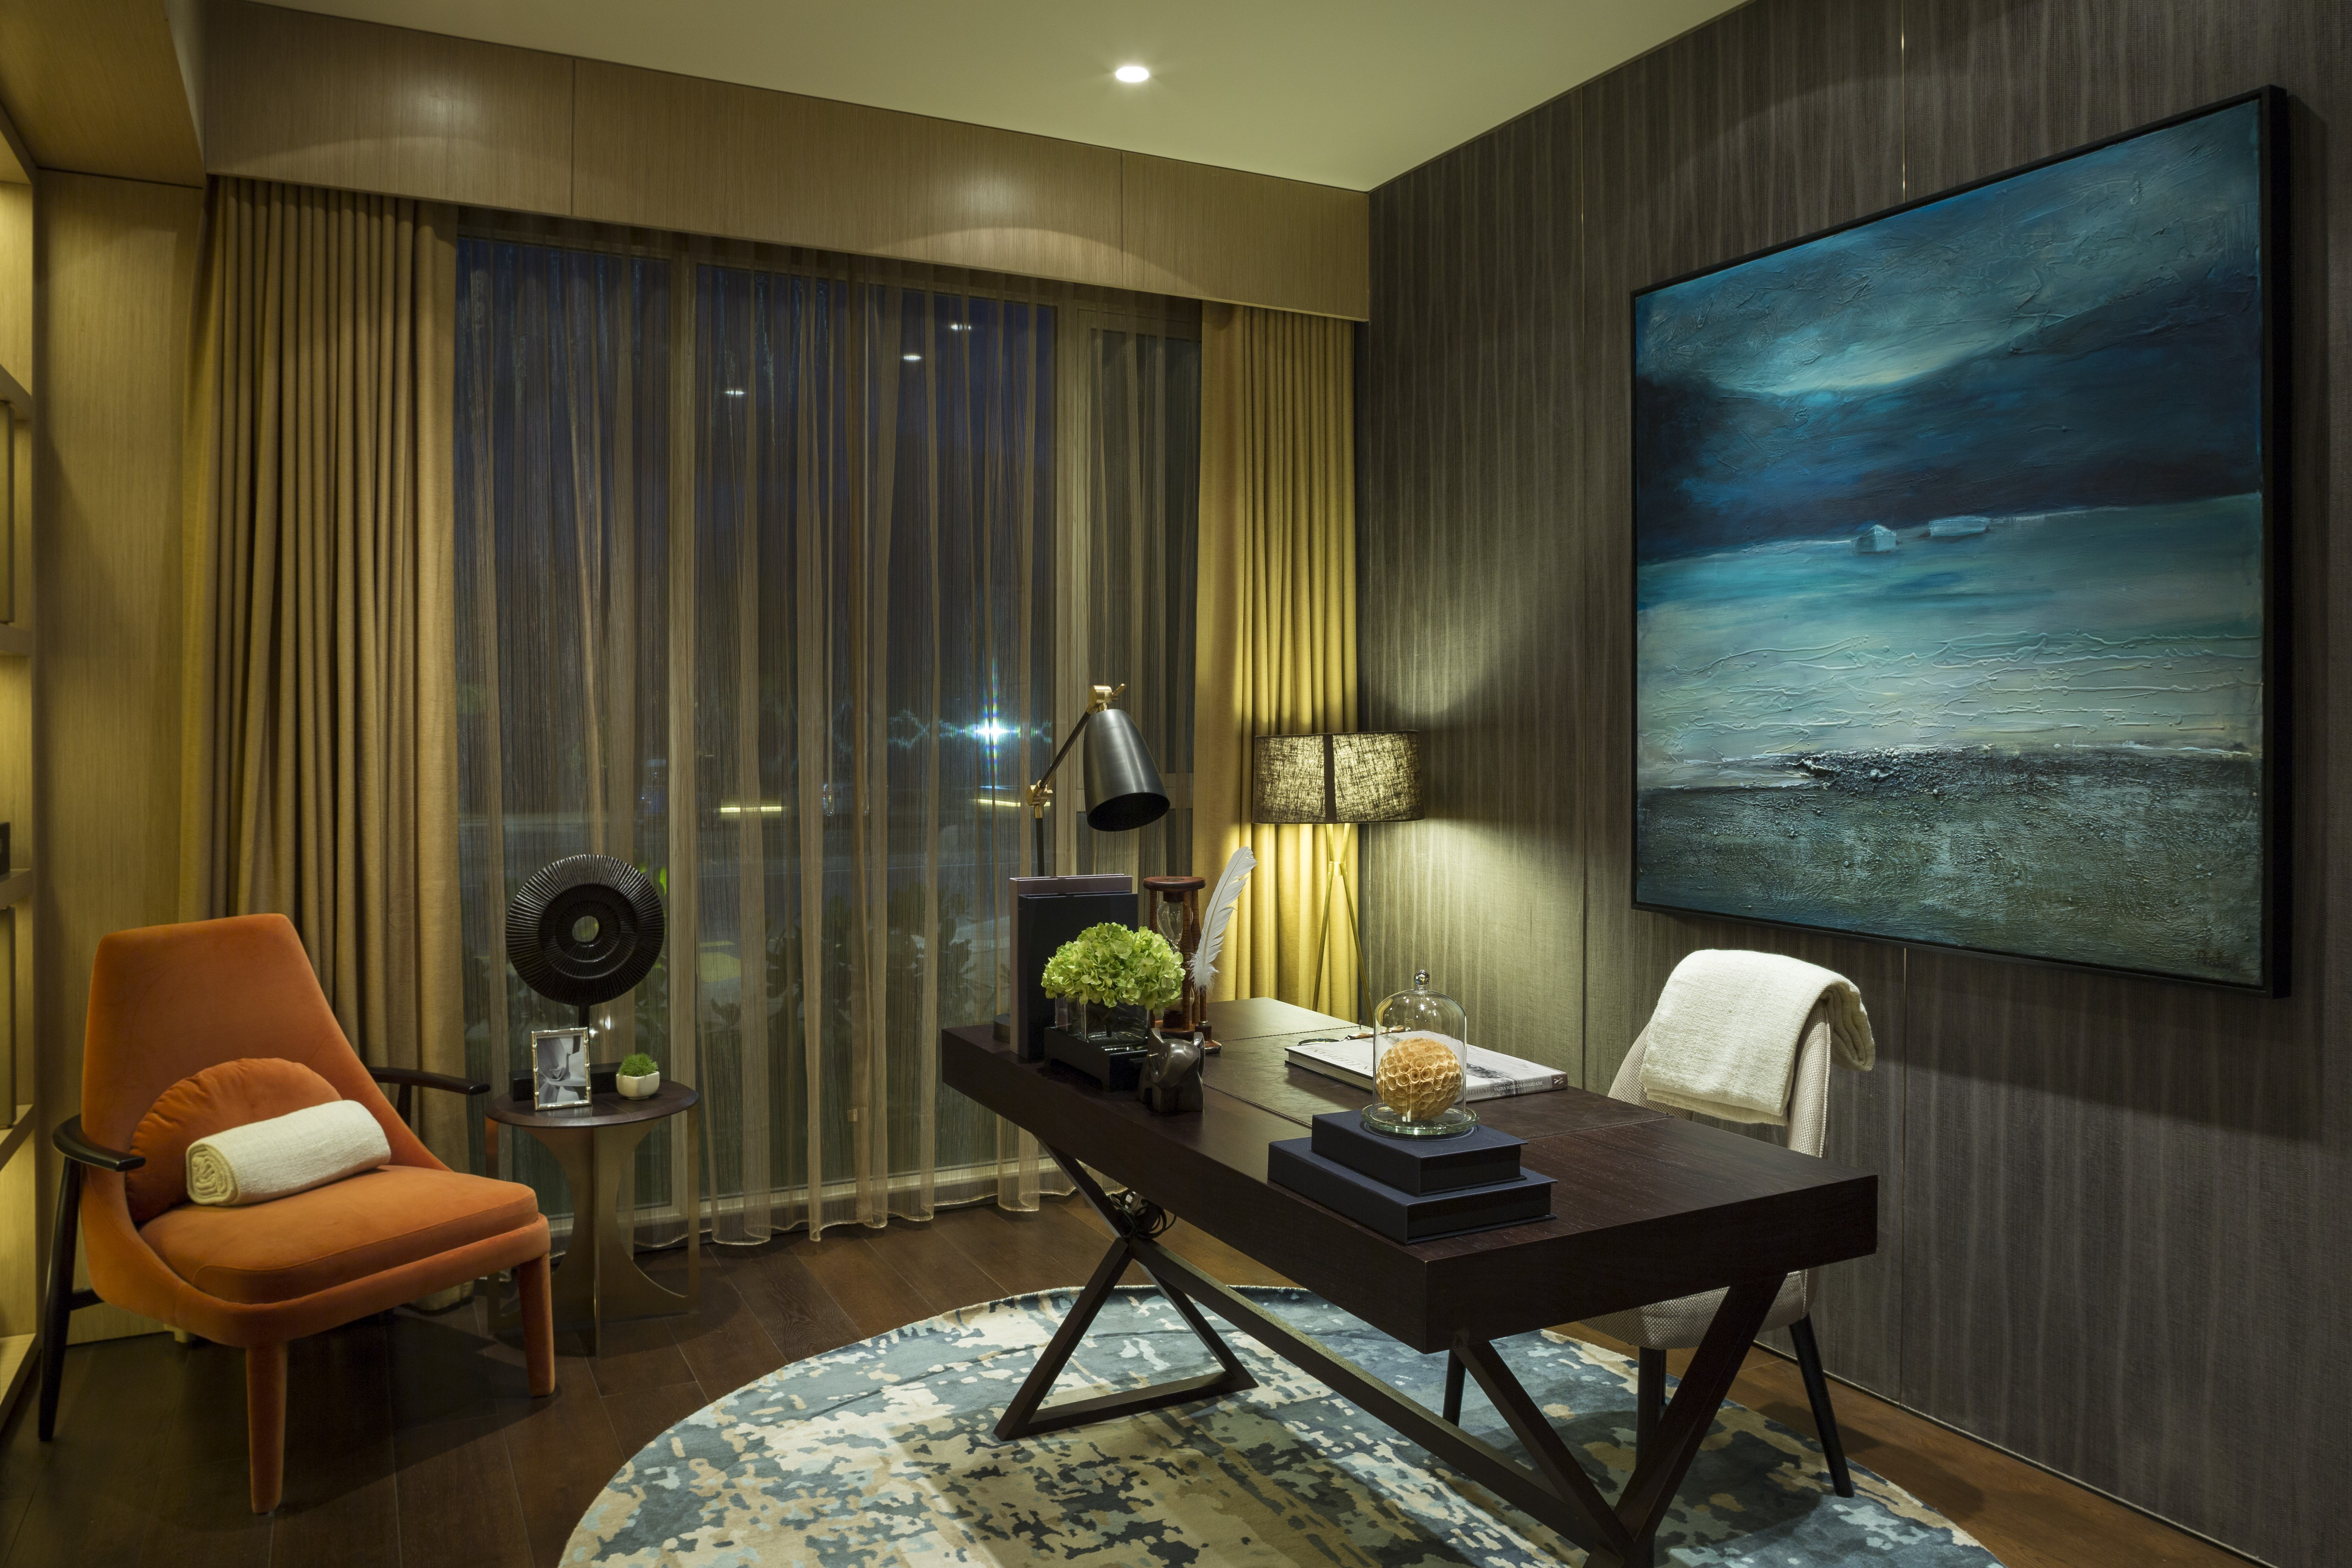 Shangri-La Residencies | Colombo 02 | The Best Luxury Apartments for